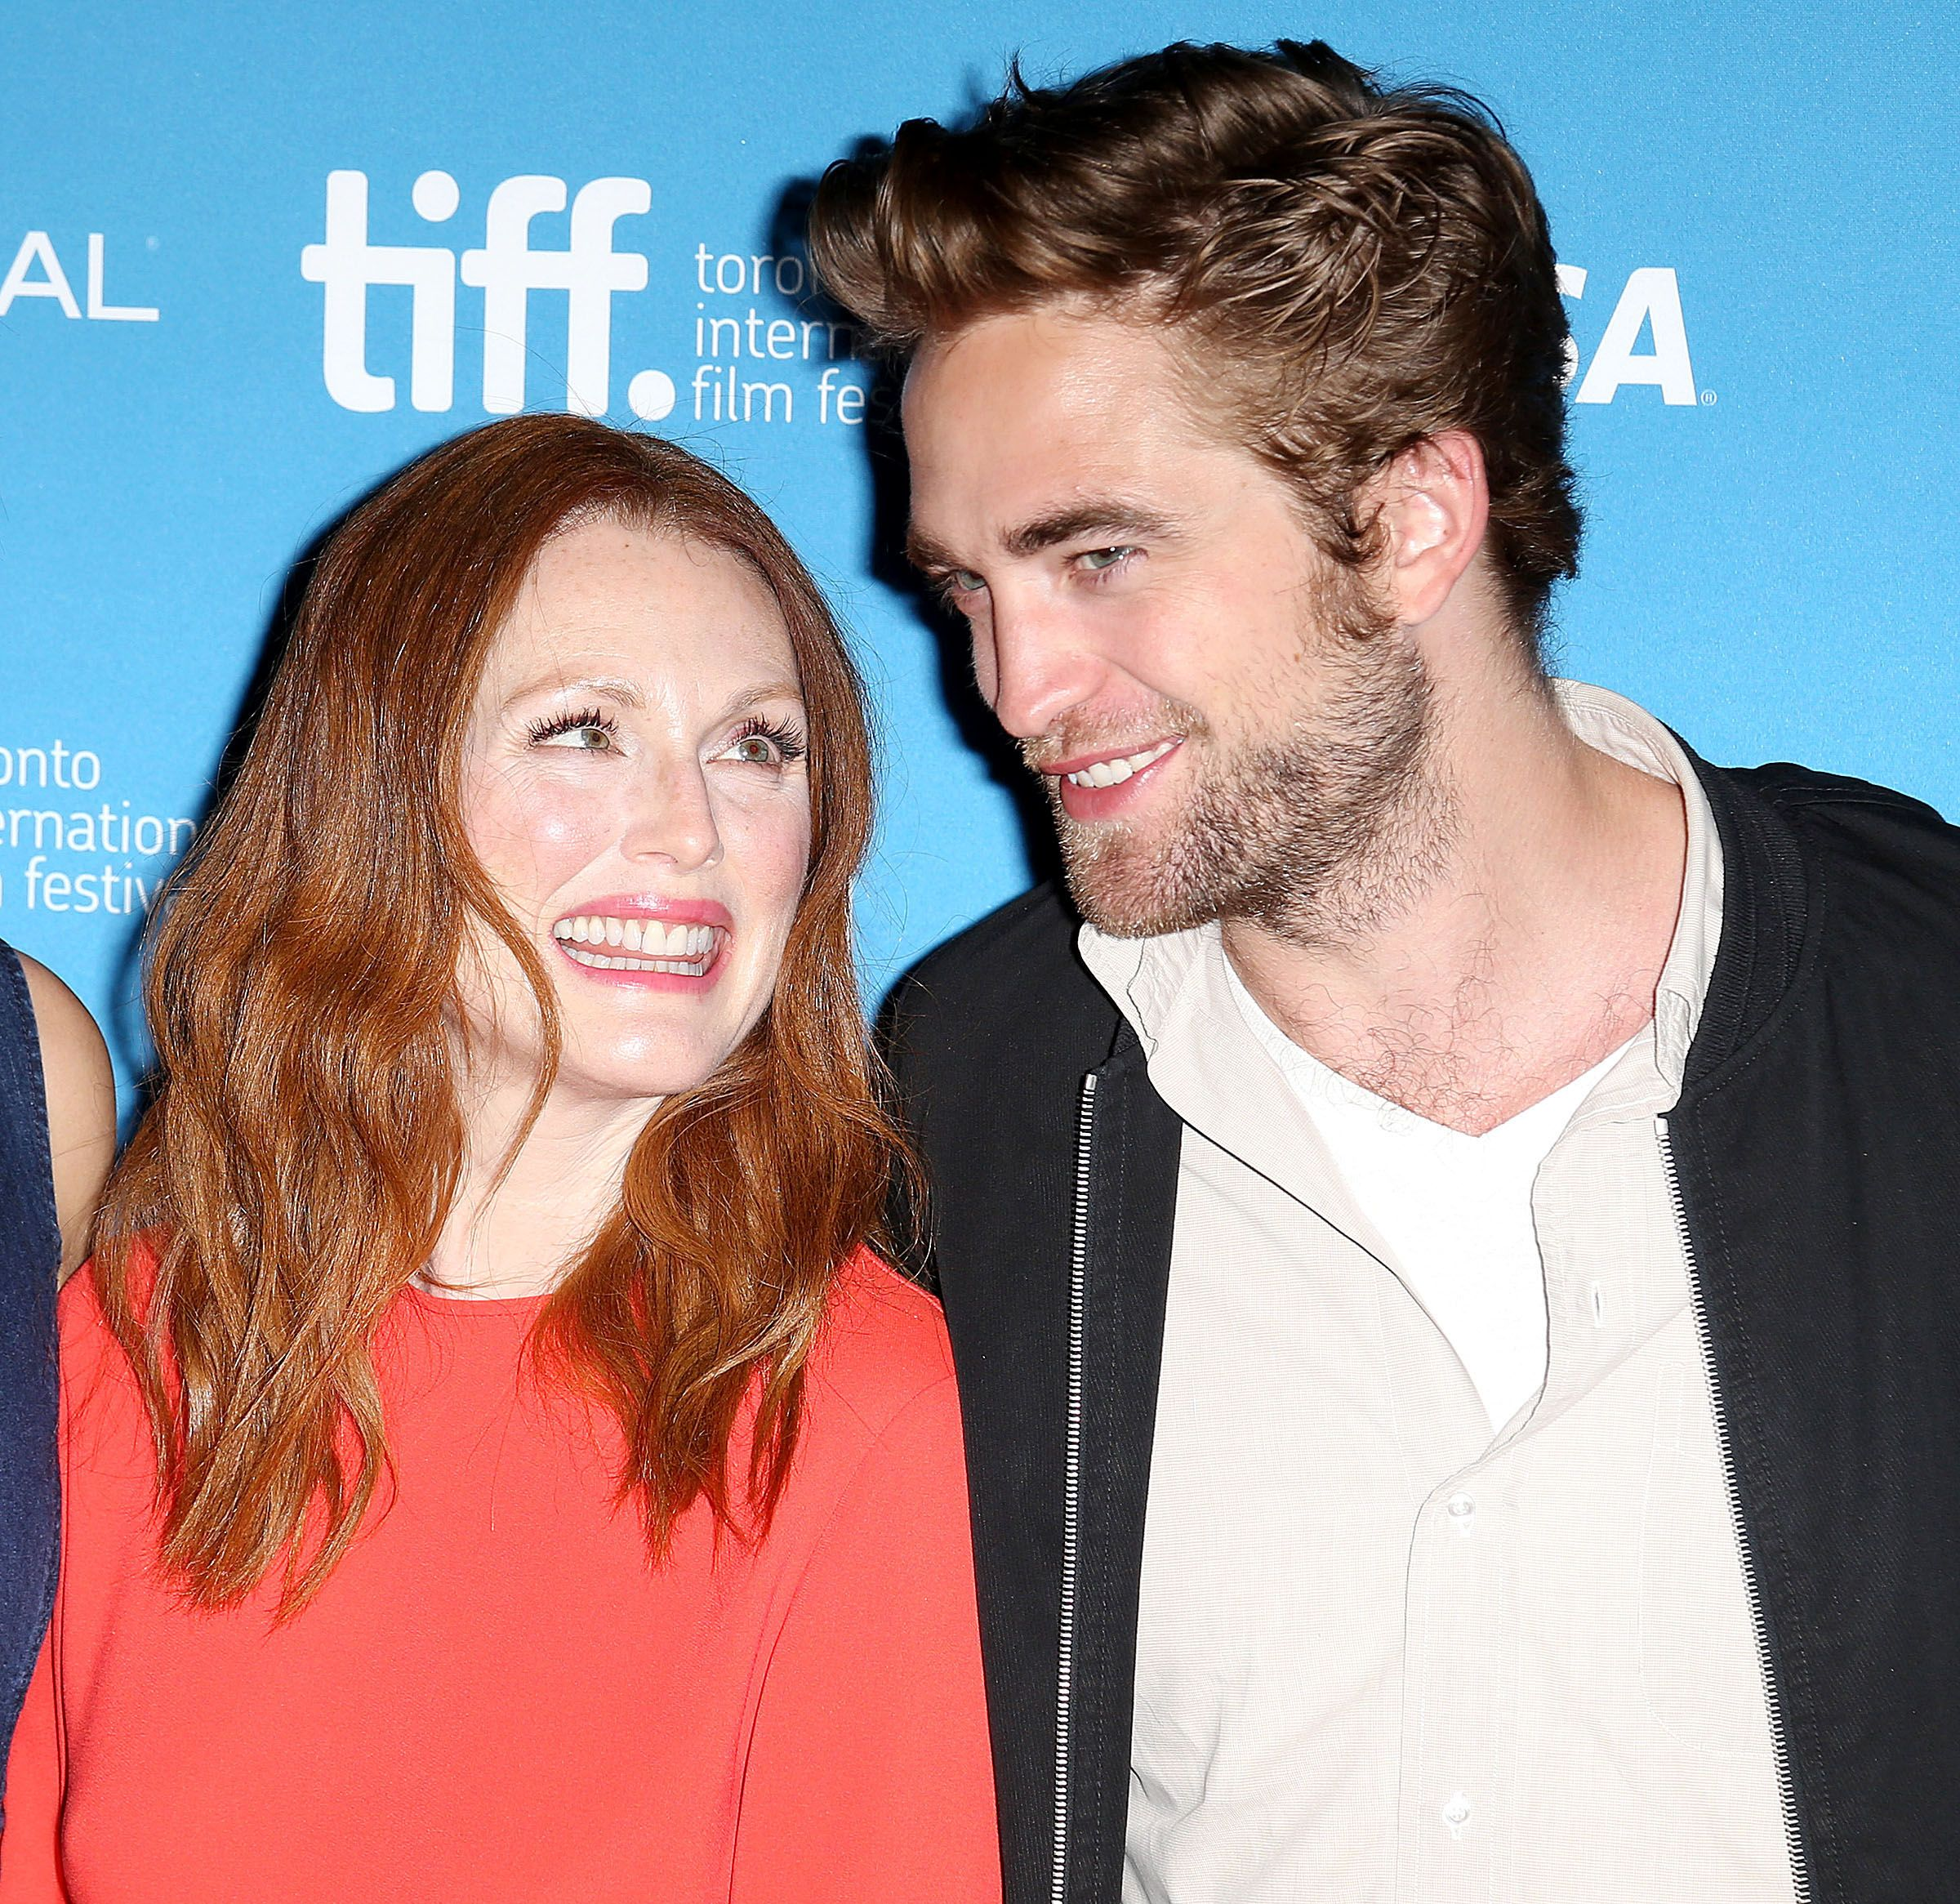 more HQ Pictures from the MTTS Photocall (scroll to photocall) http://robpattinson.blogspot.com/2014/09/maps-to-stars-tiff-press-